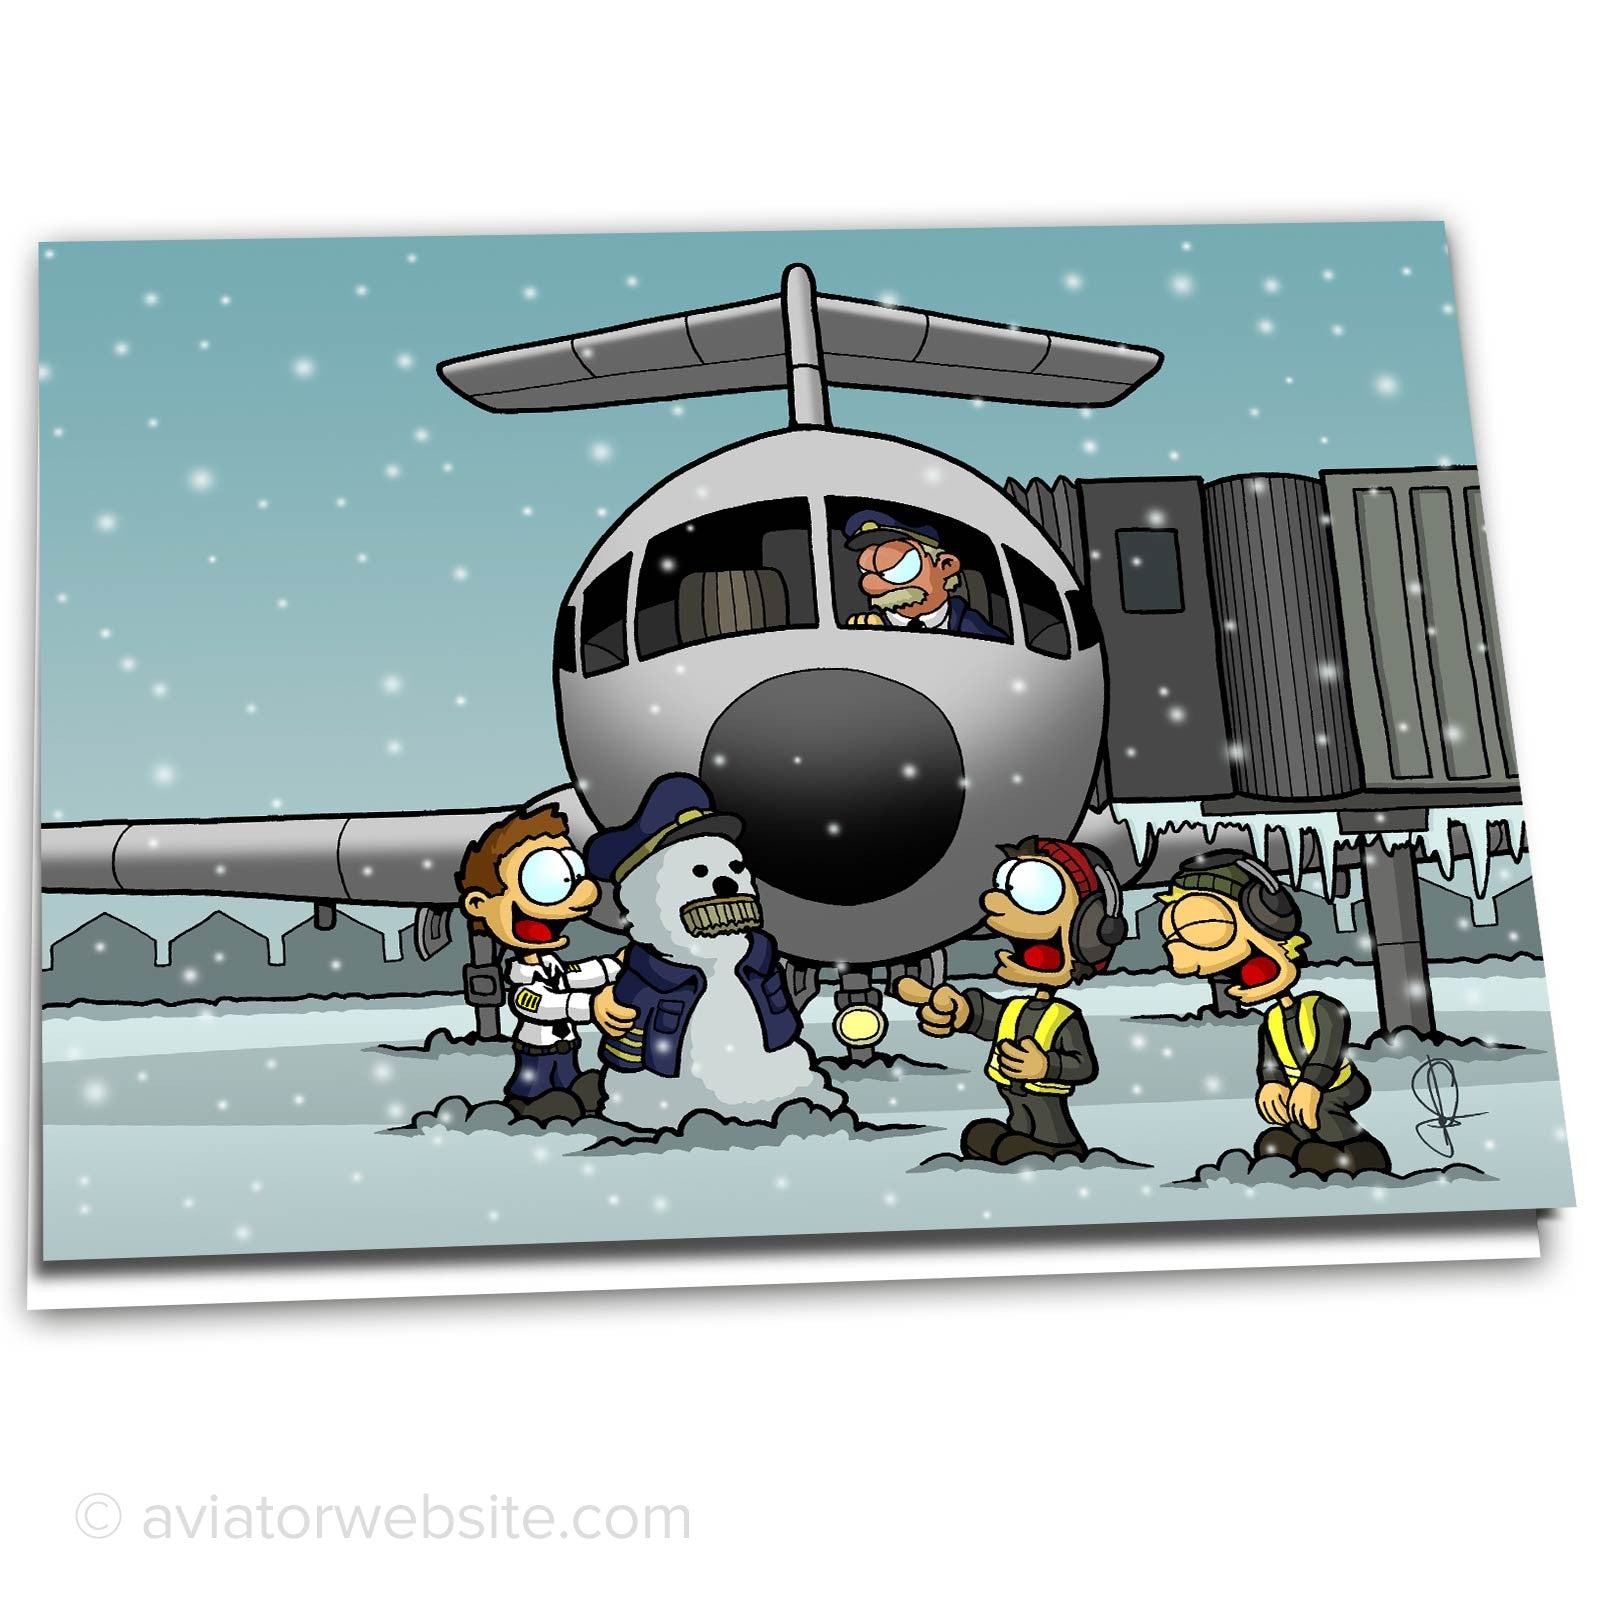 airline christmas card captain snowman - Airplane Christmas Cards